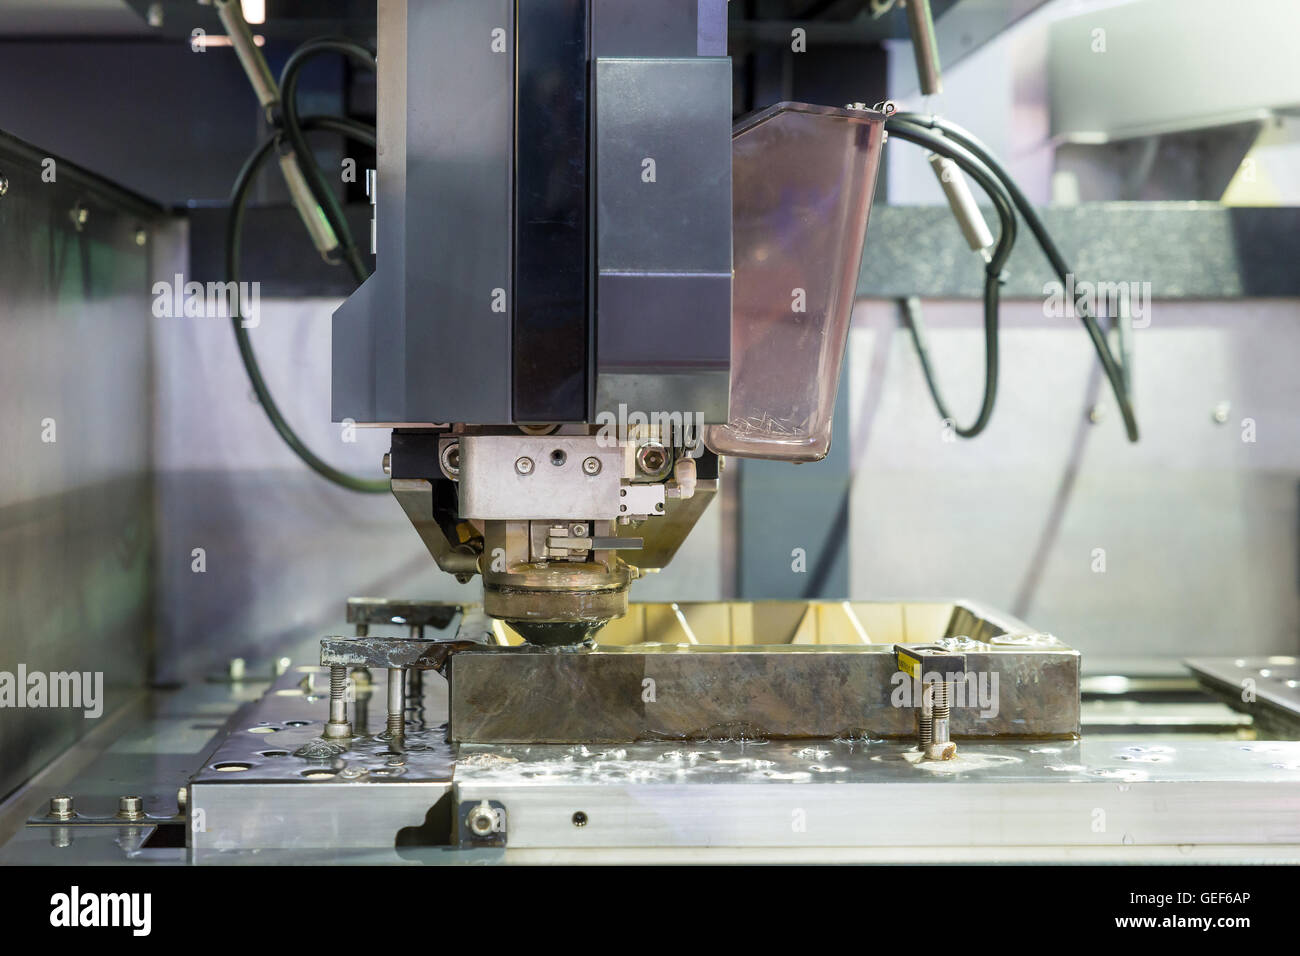 Industrial machine - EDM Industrial machine working with coolant injection in factory. Close up at Industrial machine. - Stock Image